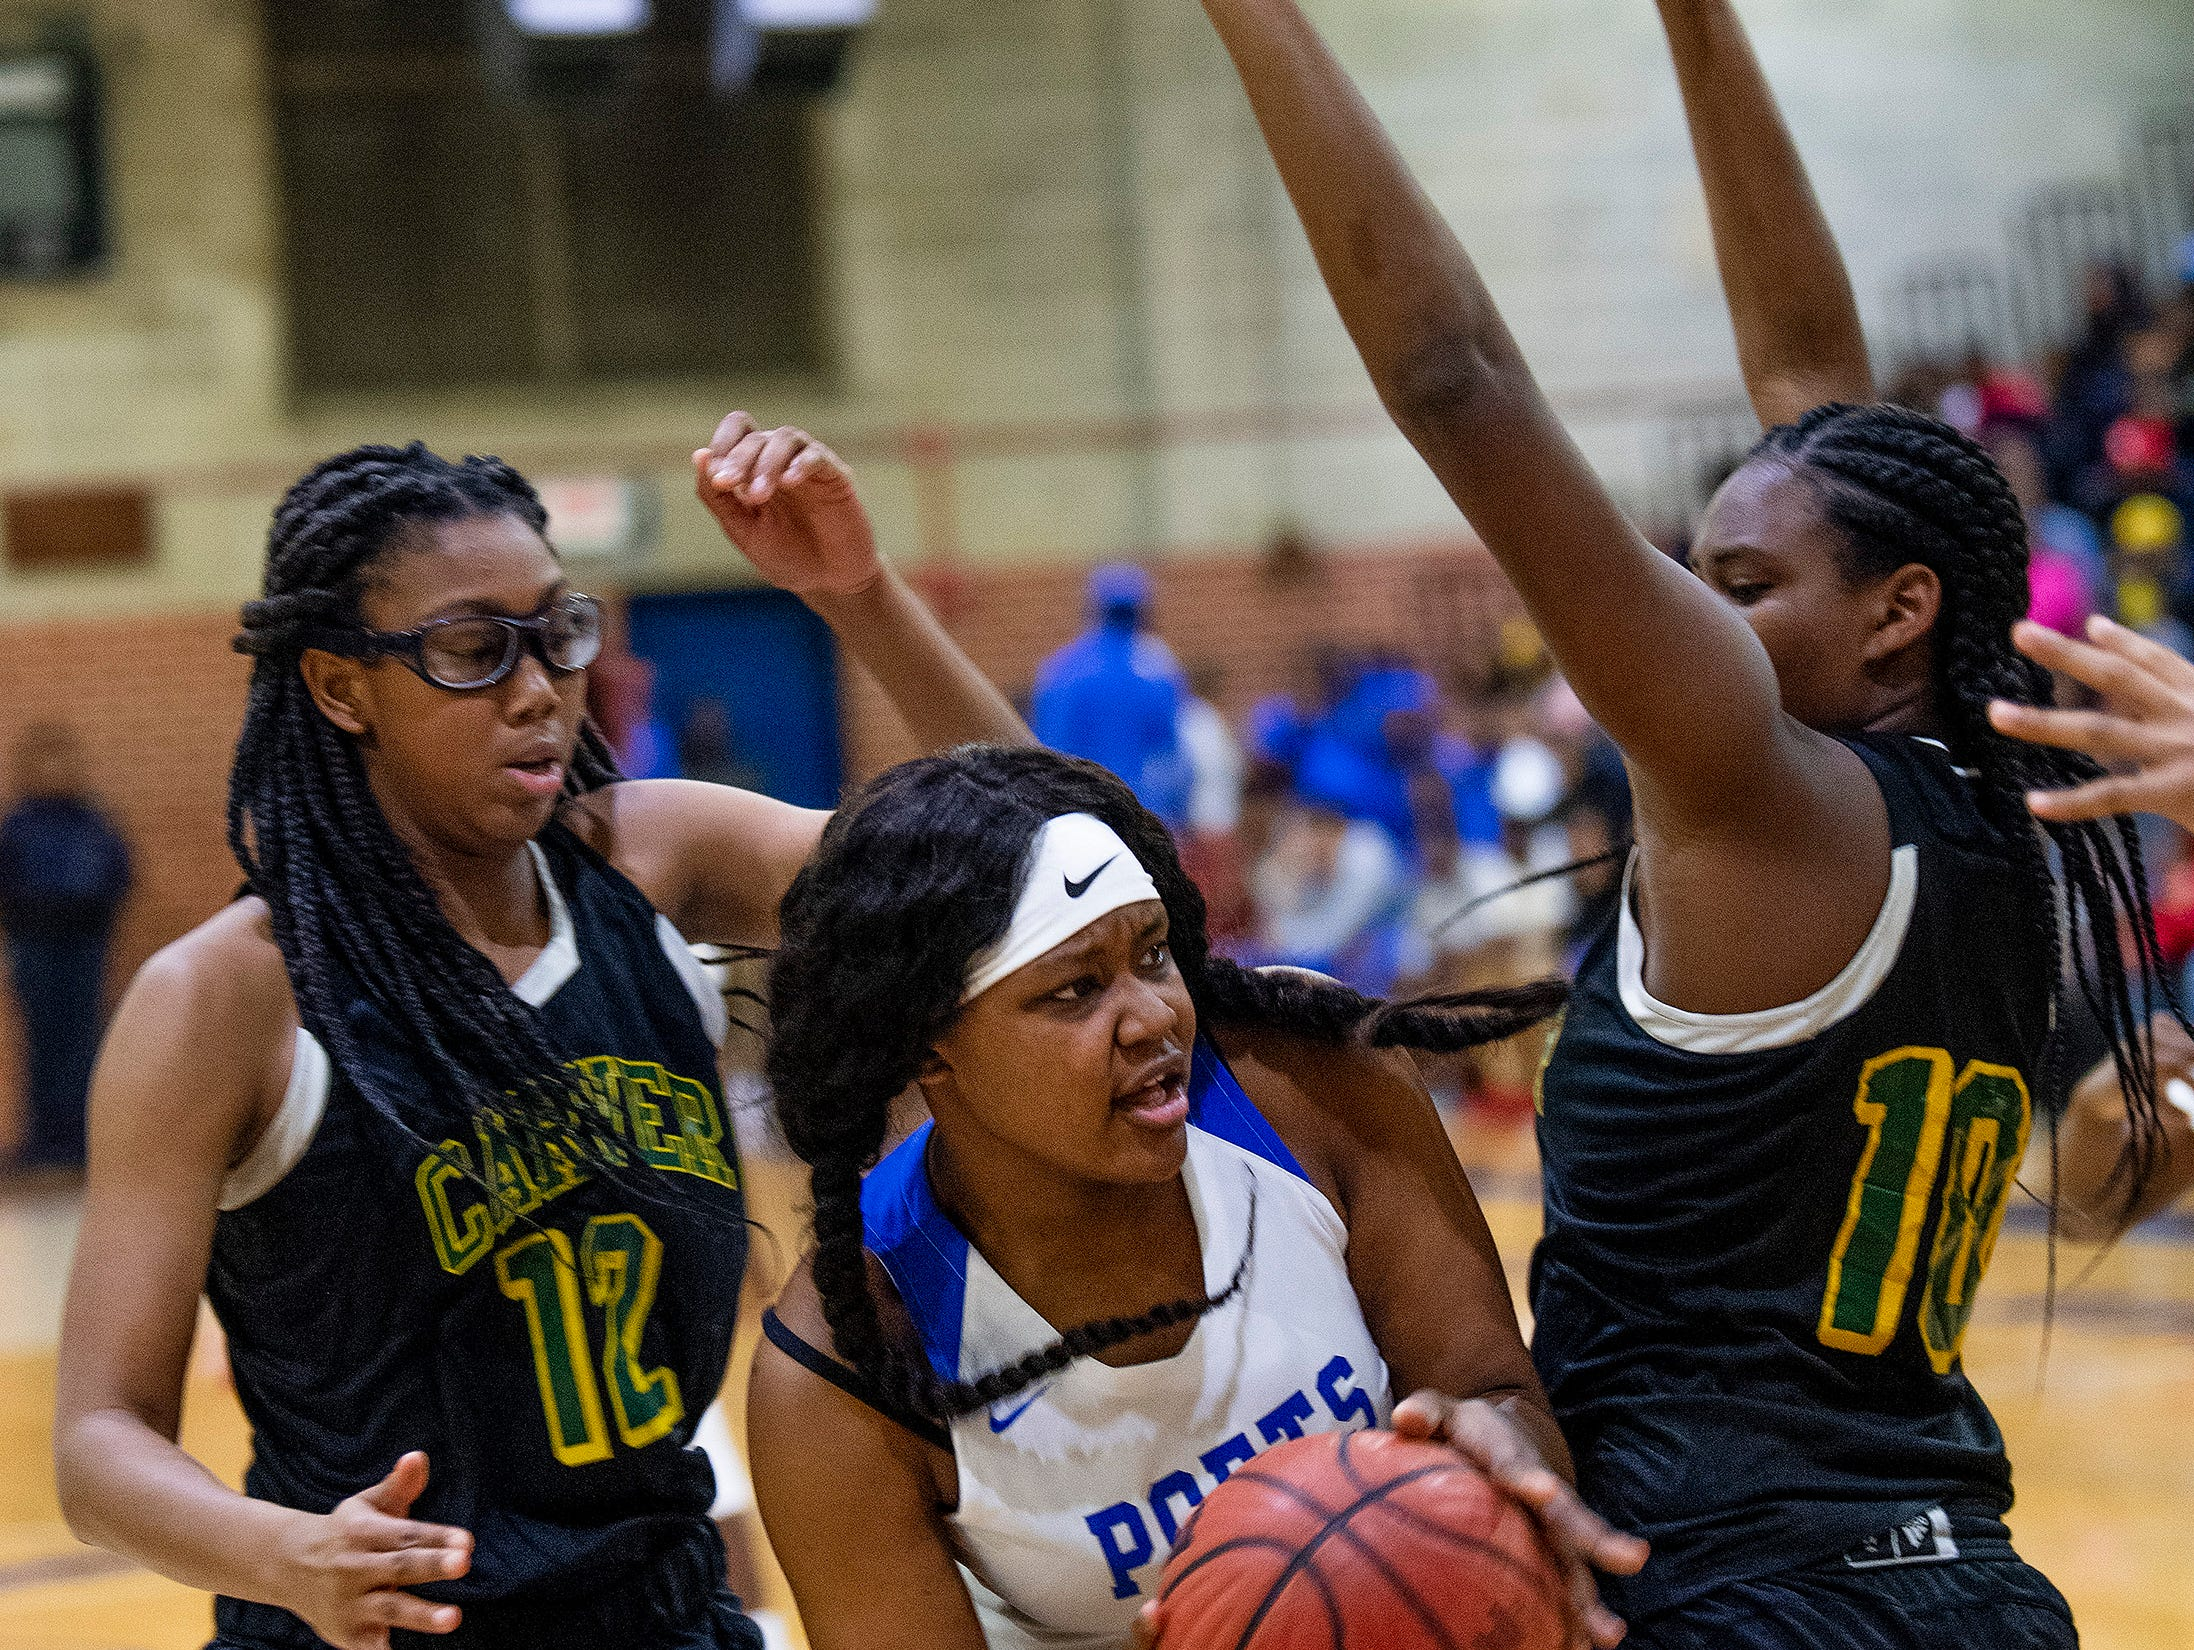 Lanier's Kadresha Smith (33) is defended by Carver's Mya Barnes (12)  and Carver's Bre anna Rhodes (10) at the Lanier campus in Montgomery, Ala., on Friday January 11, 2019.